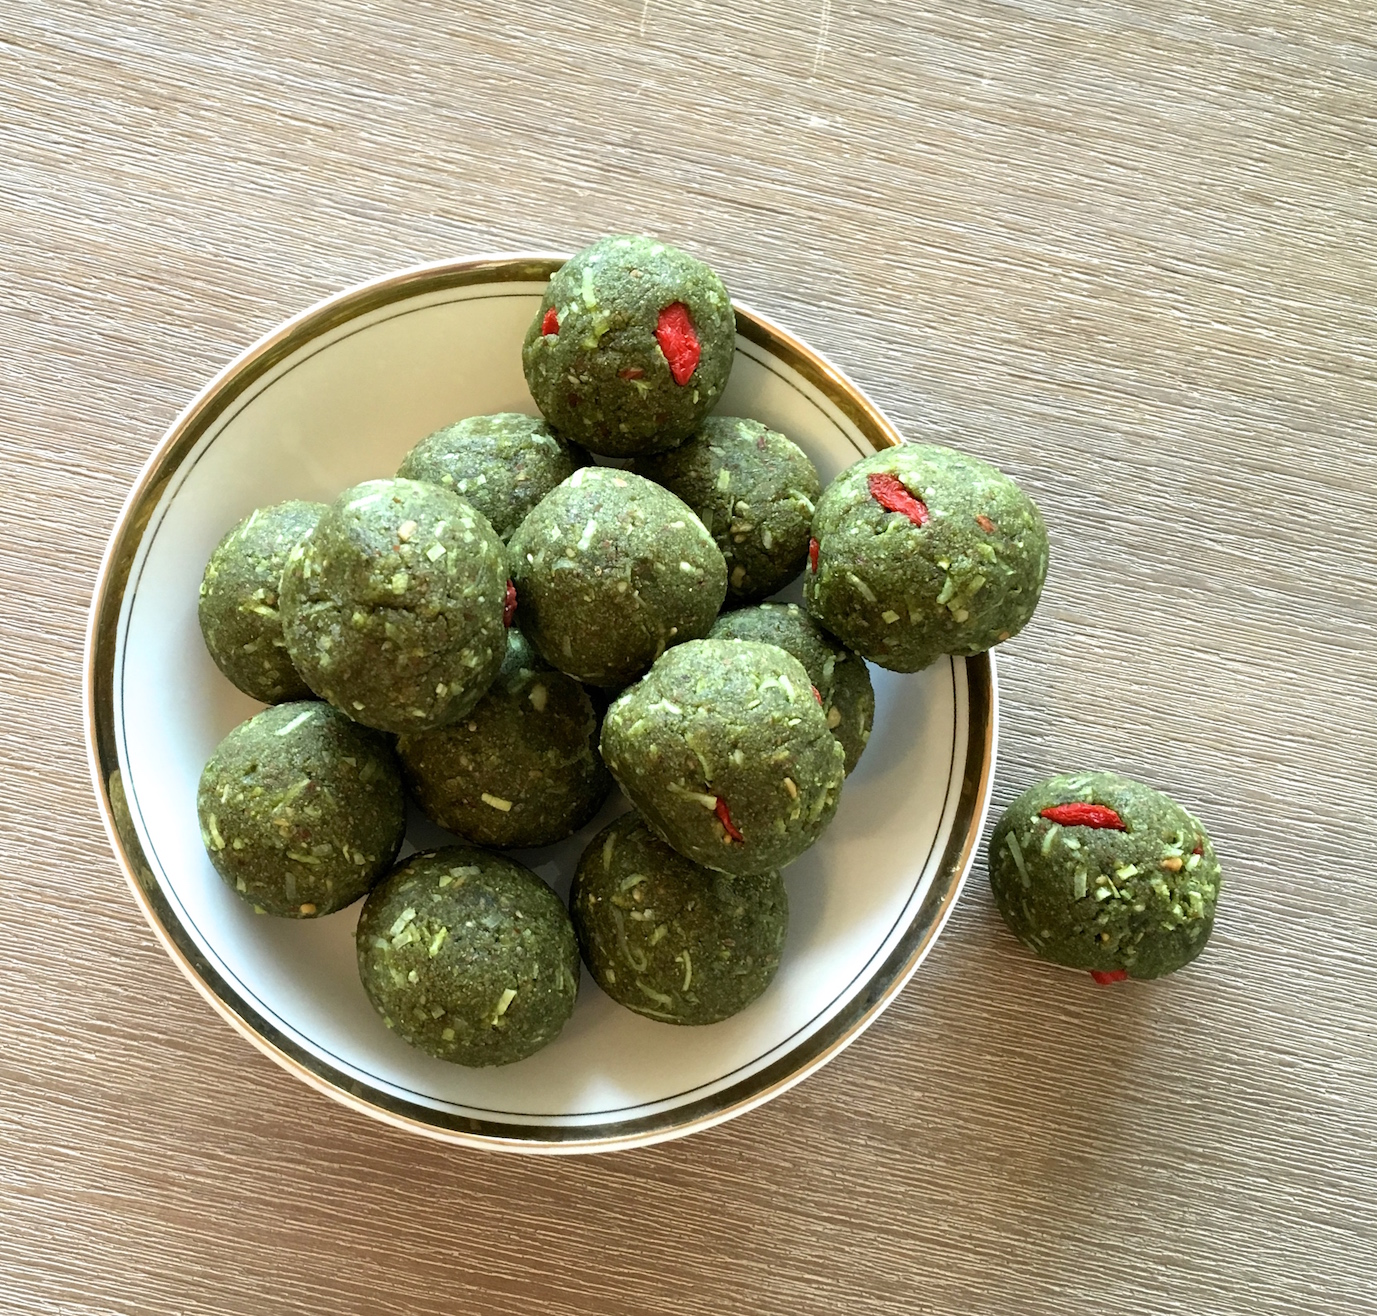 Wendy's Way matcha protein balls